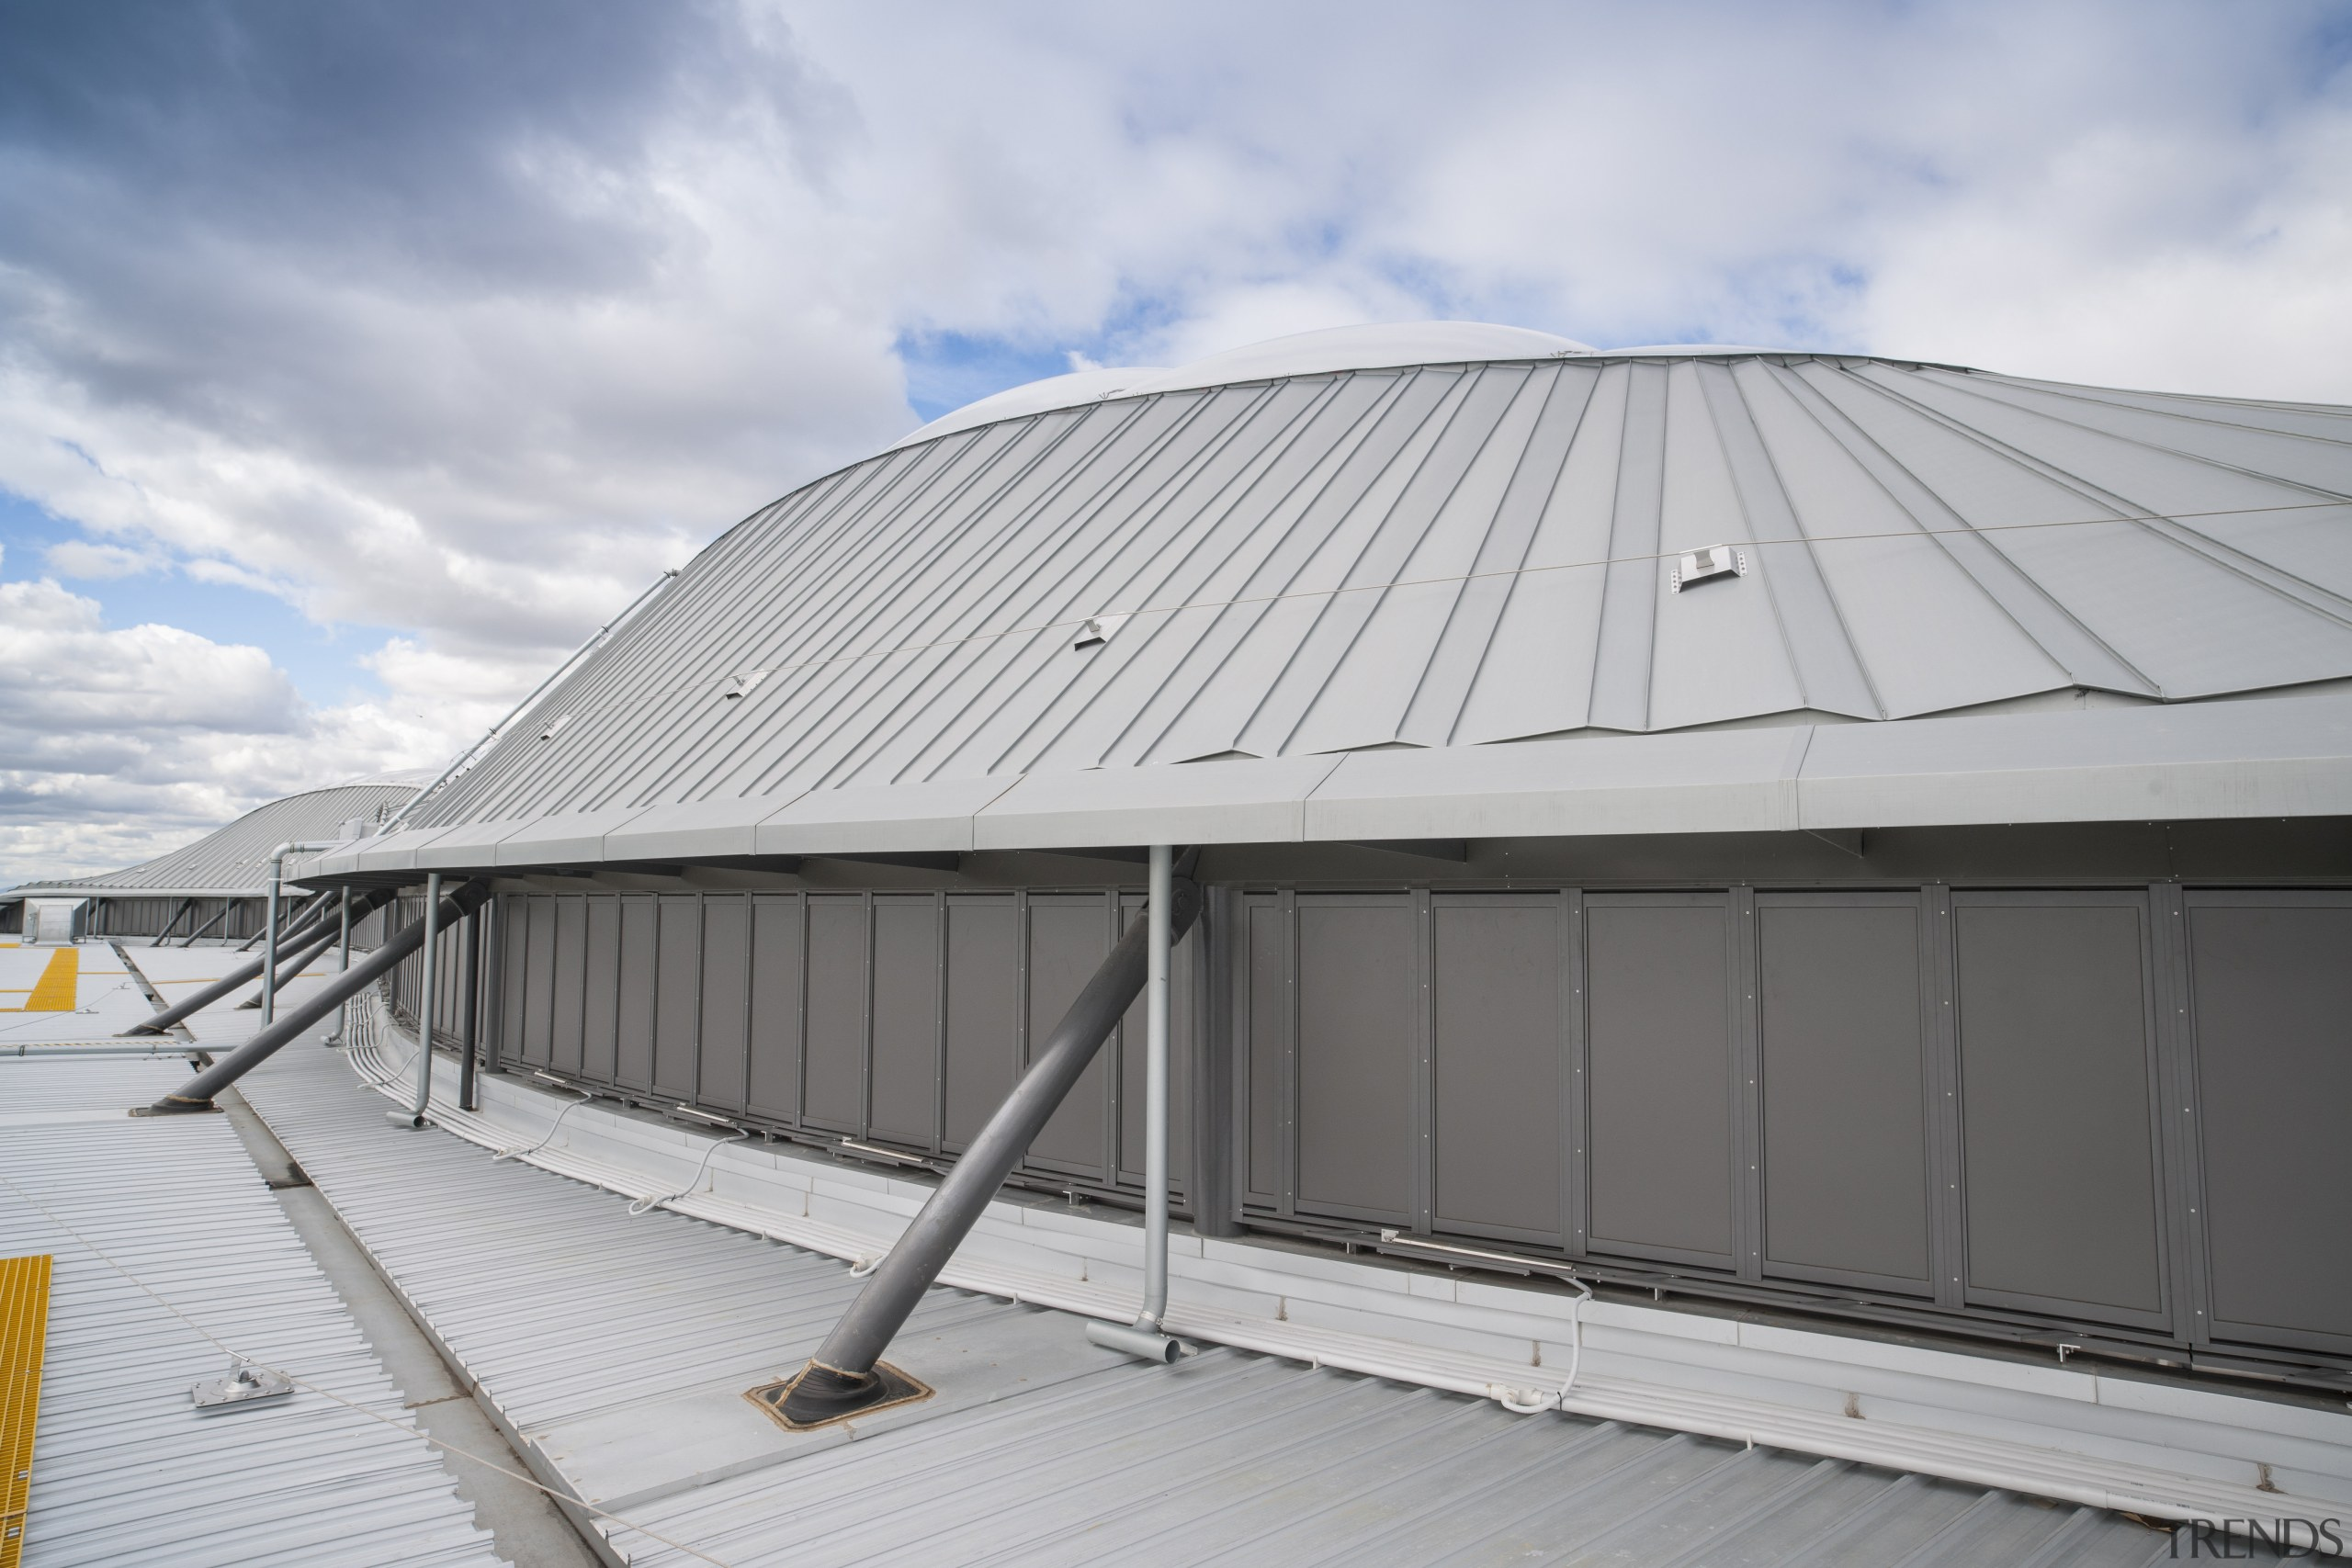 The roof was chosen in part for its architecture, building, cloud, daylighting, daytime, line, roof, shed, sky, structure, gray